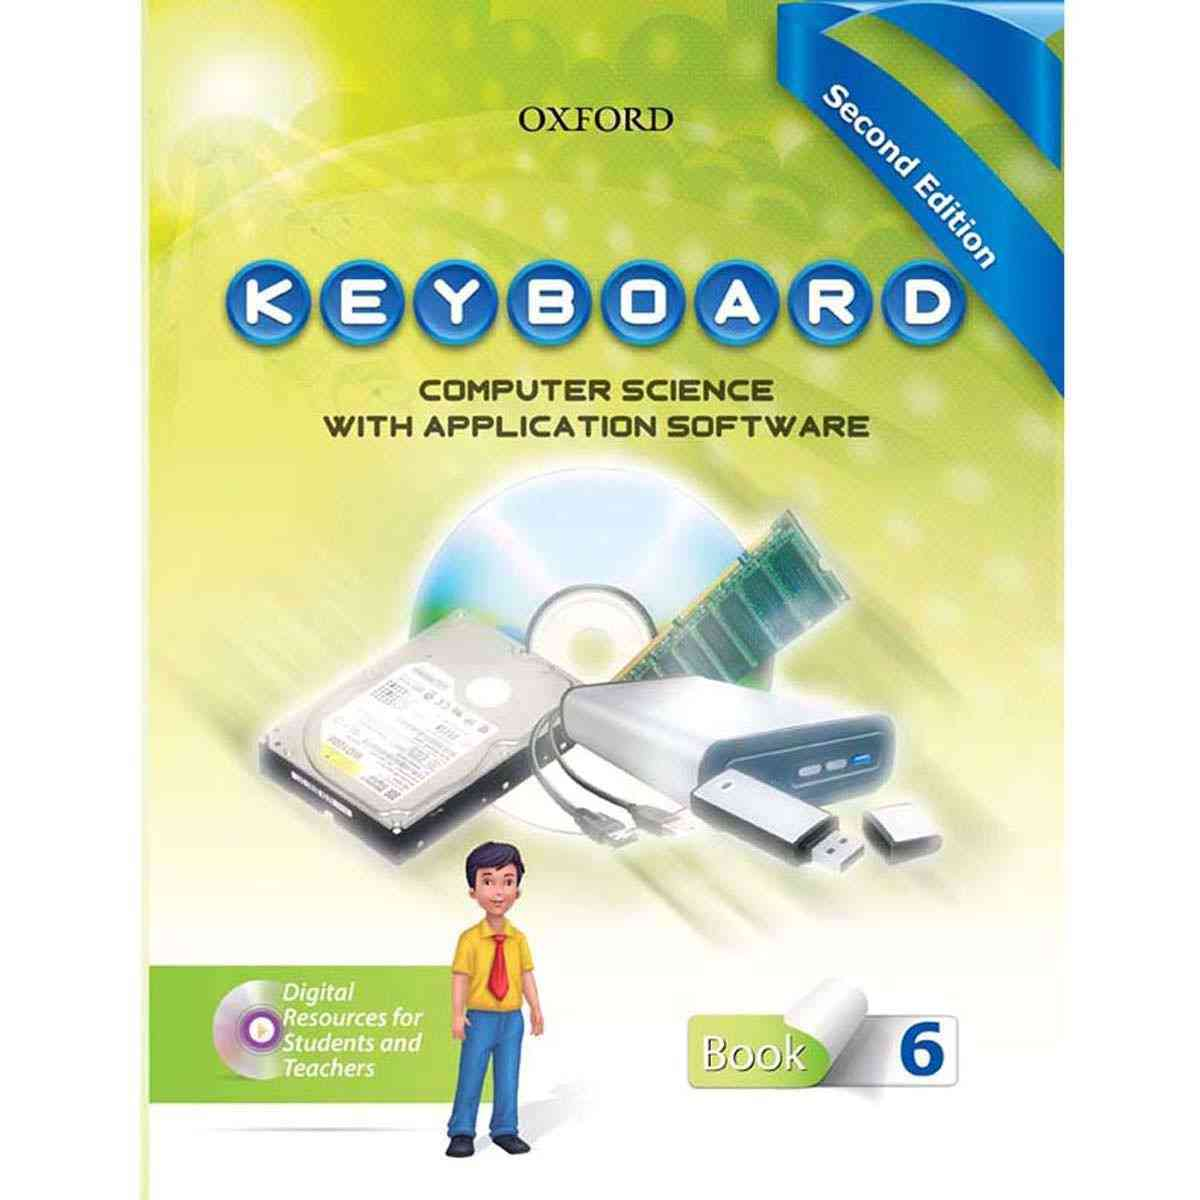 Oxford Books Keyboard Book 6 Second Edition